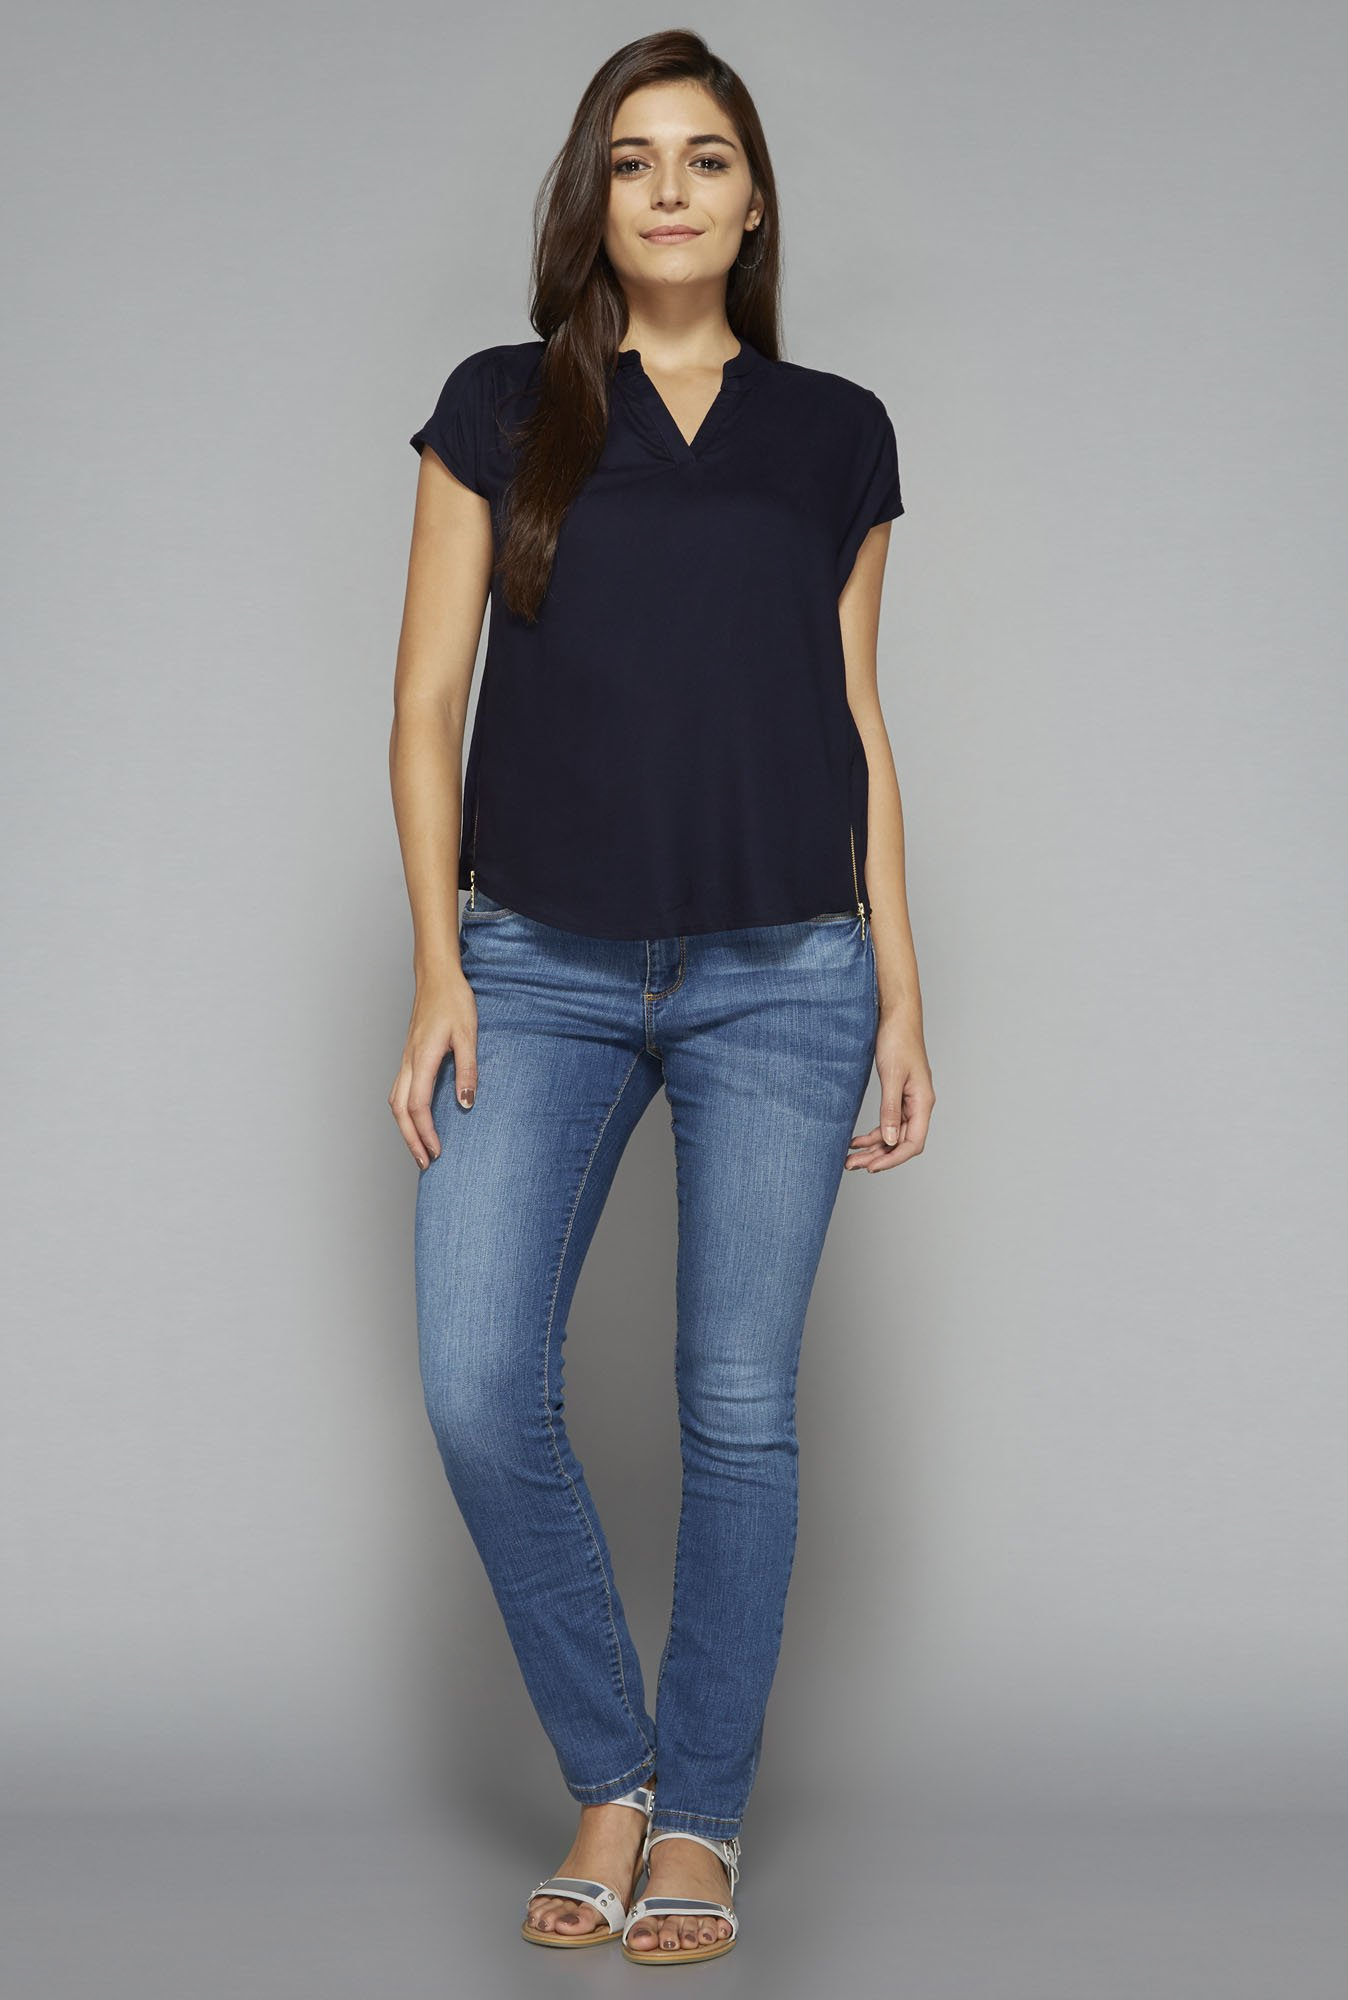 LOV by Westside Navy Pluto Blouse